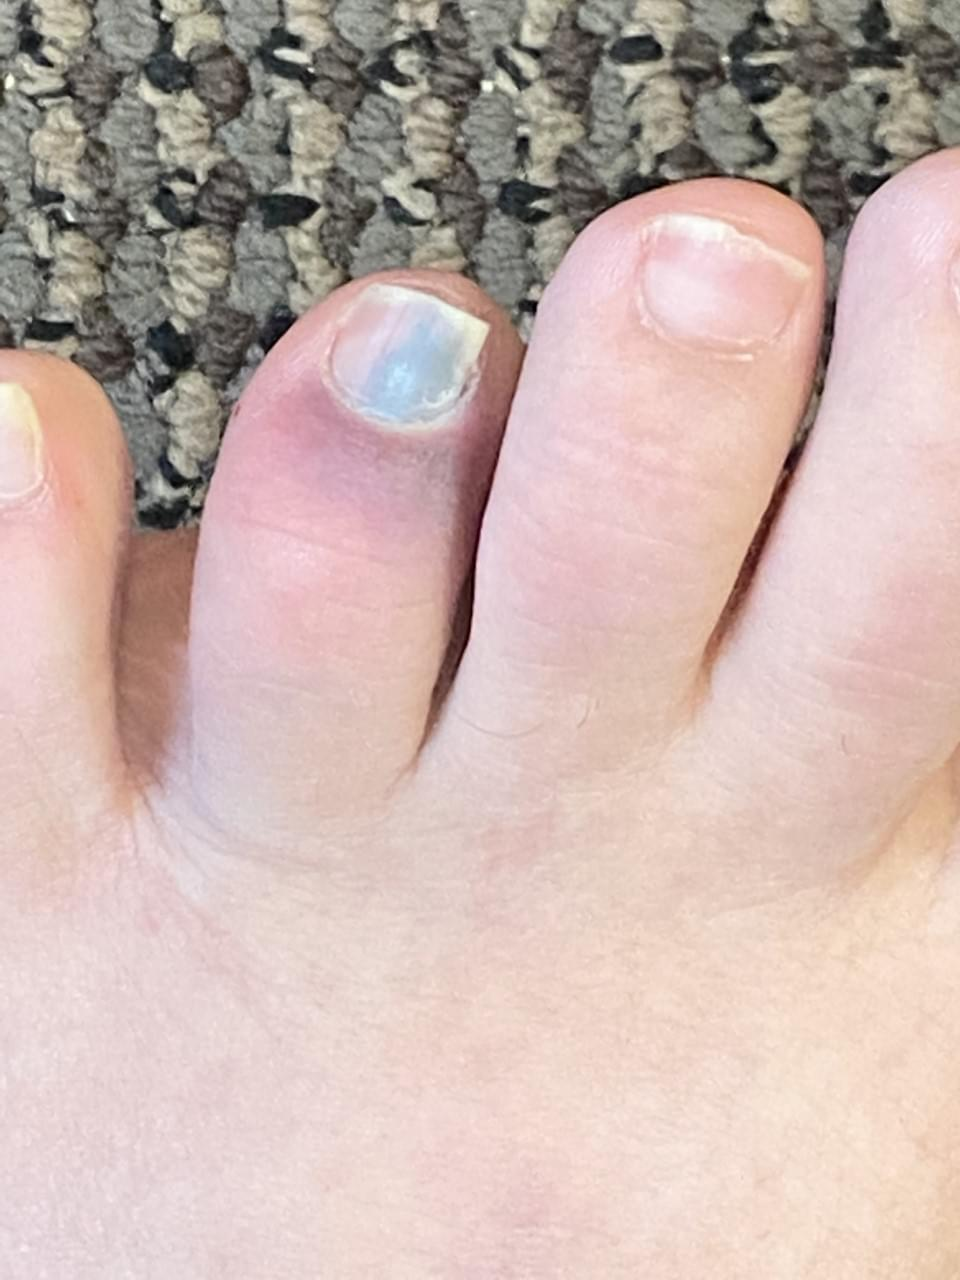 Jay's Toe Update…My Toenail Is About To Fall Off!